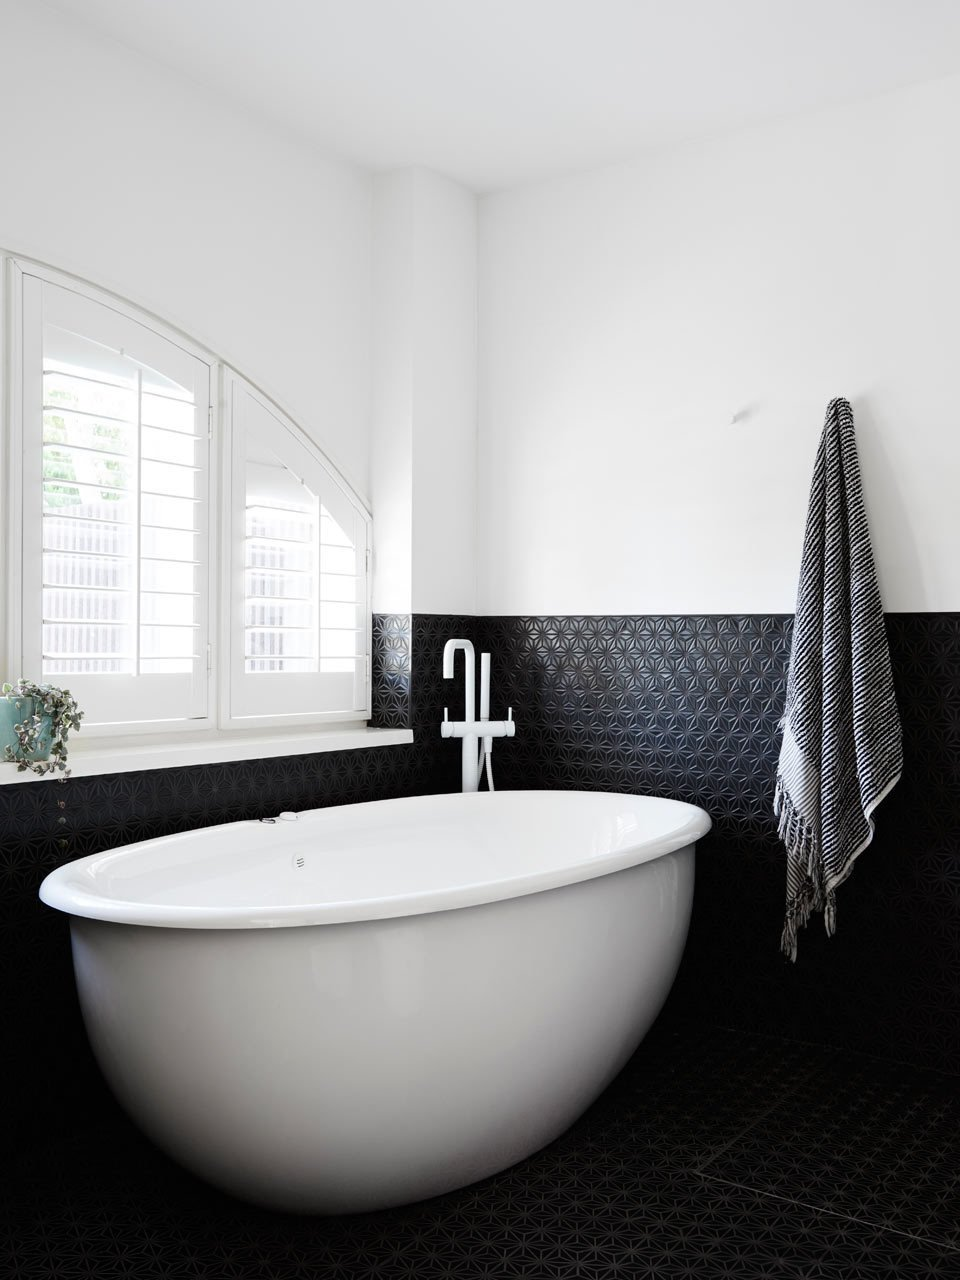 #designmilk #northbourne #architecture #melbourne #modern Photo by Eve Wilson  The new master bathroom is outfitted with charcoal Japanese mosaic tiles, which contrast the white paint and fixtures.    Tubs